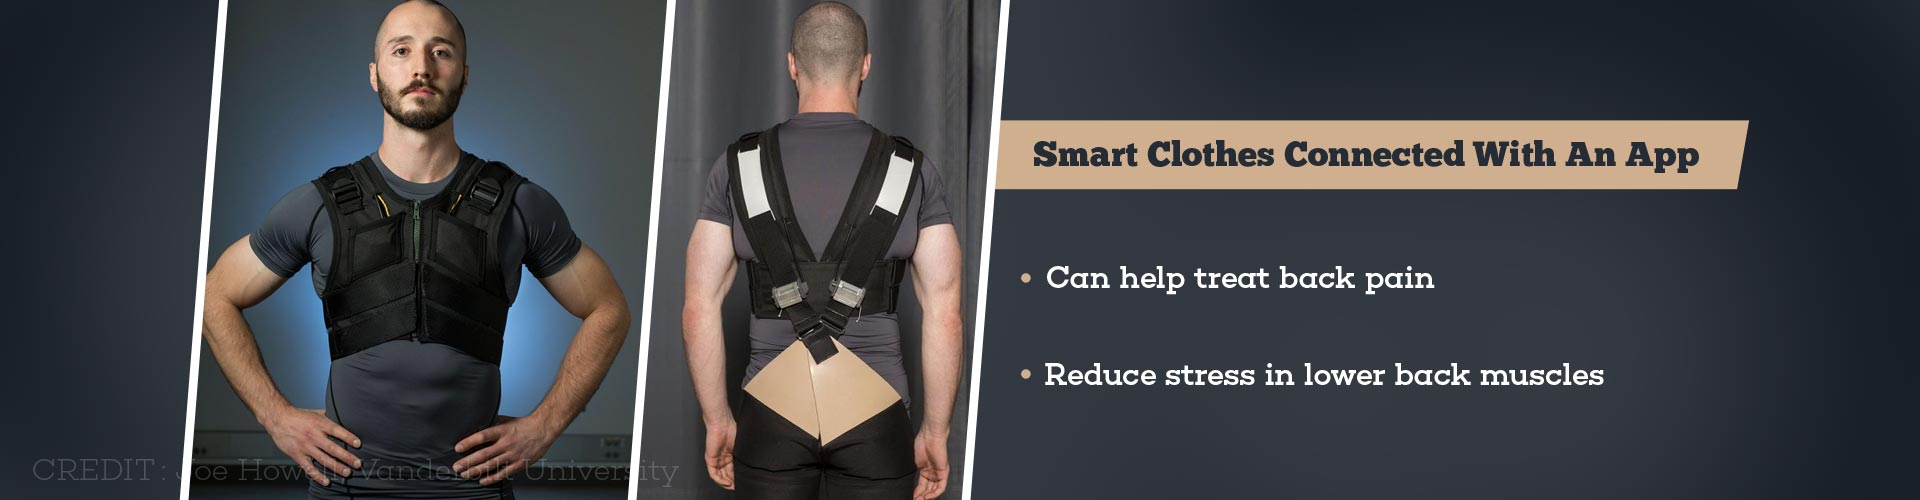 Smart Clothes Reduce Stress on Lower Back, Prevents Back Pain